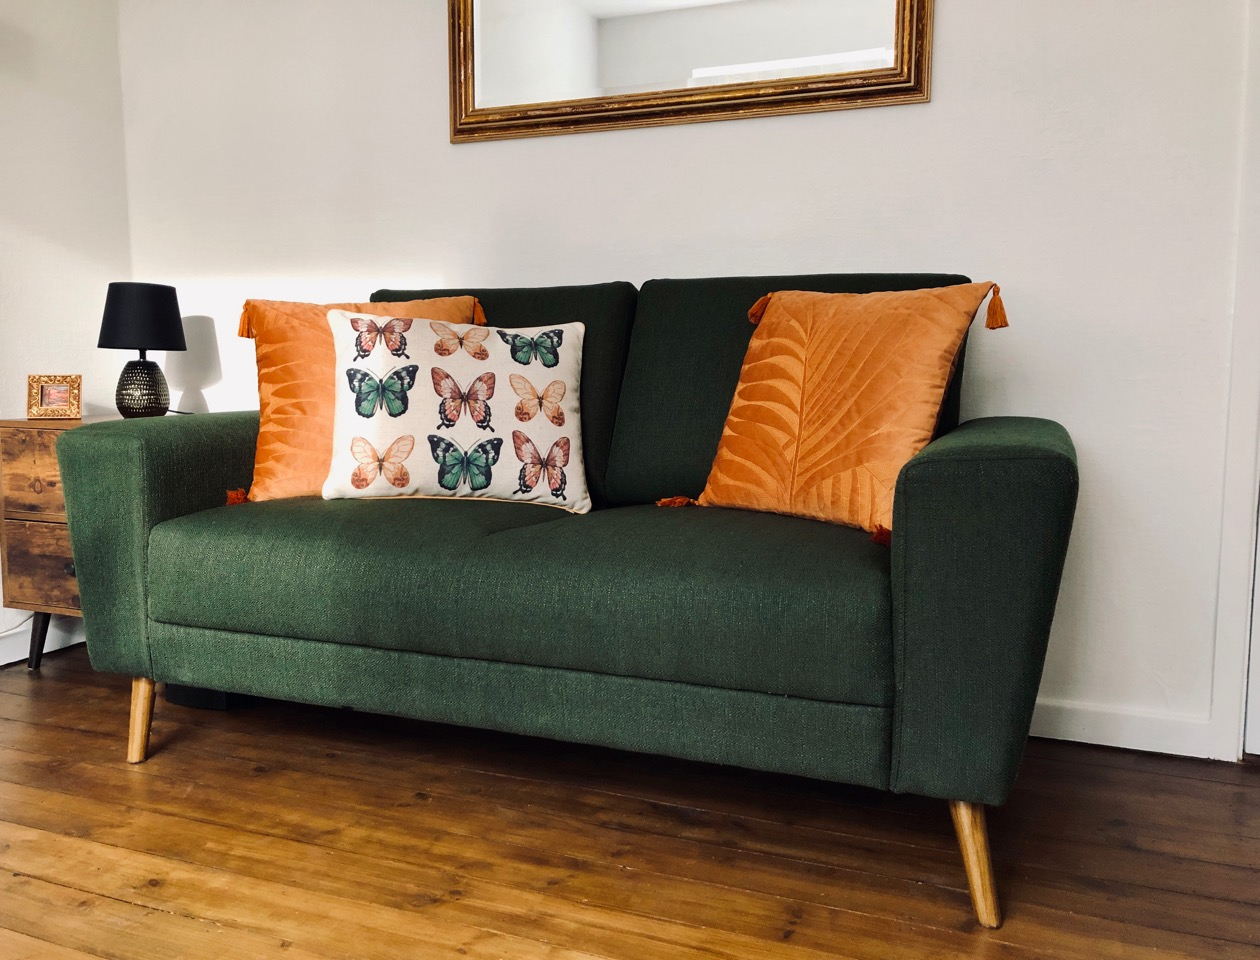 Green Cosy 2-seater sofa from Wendy